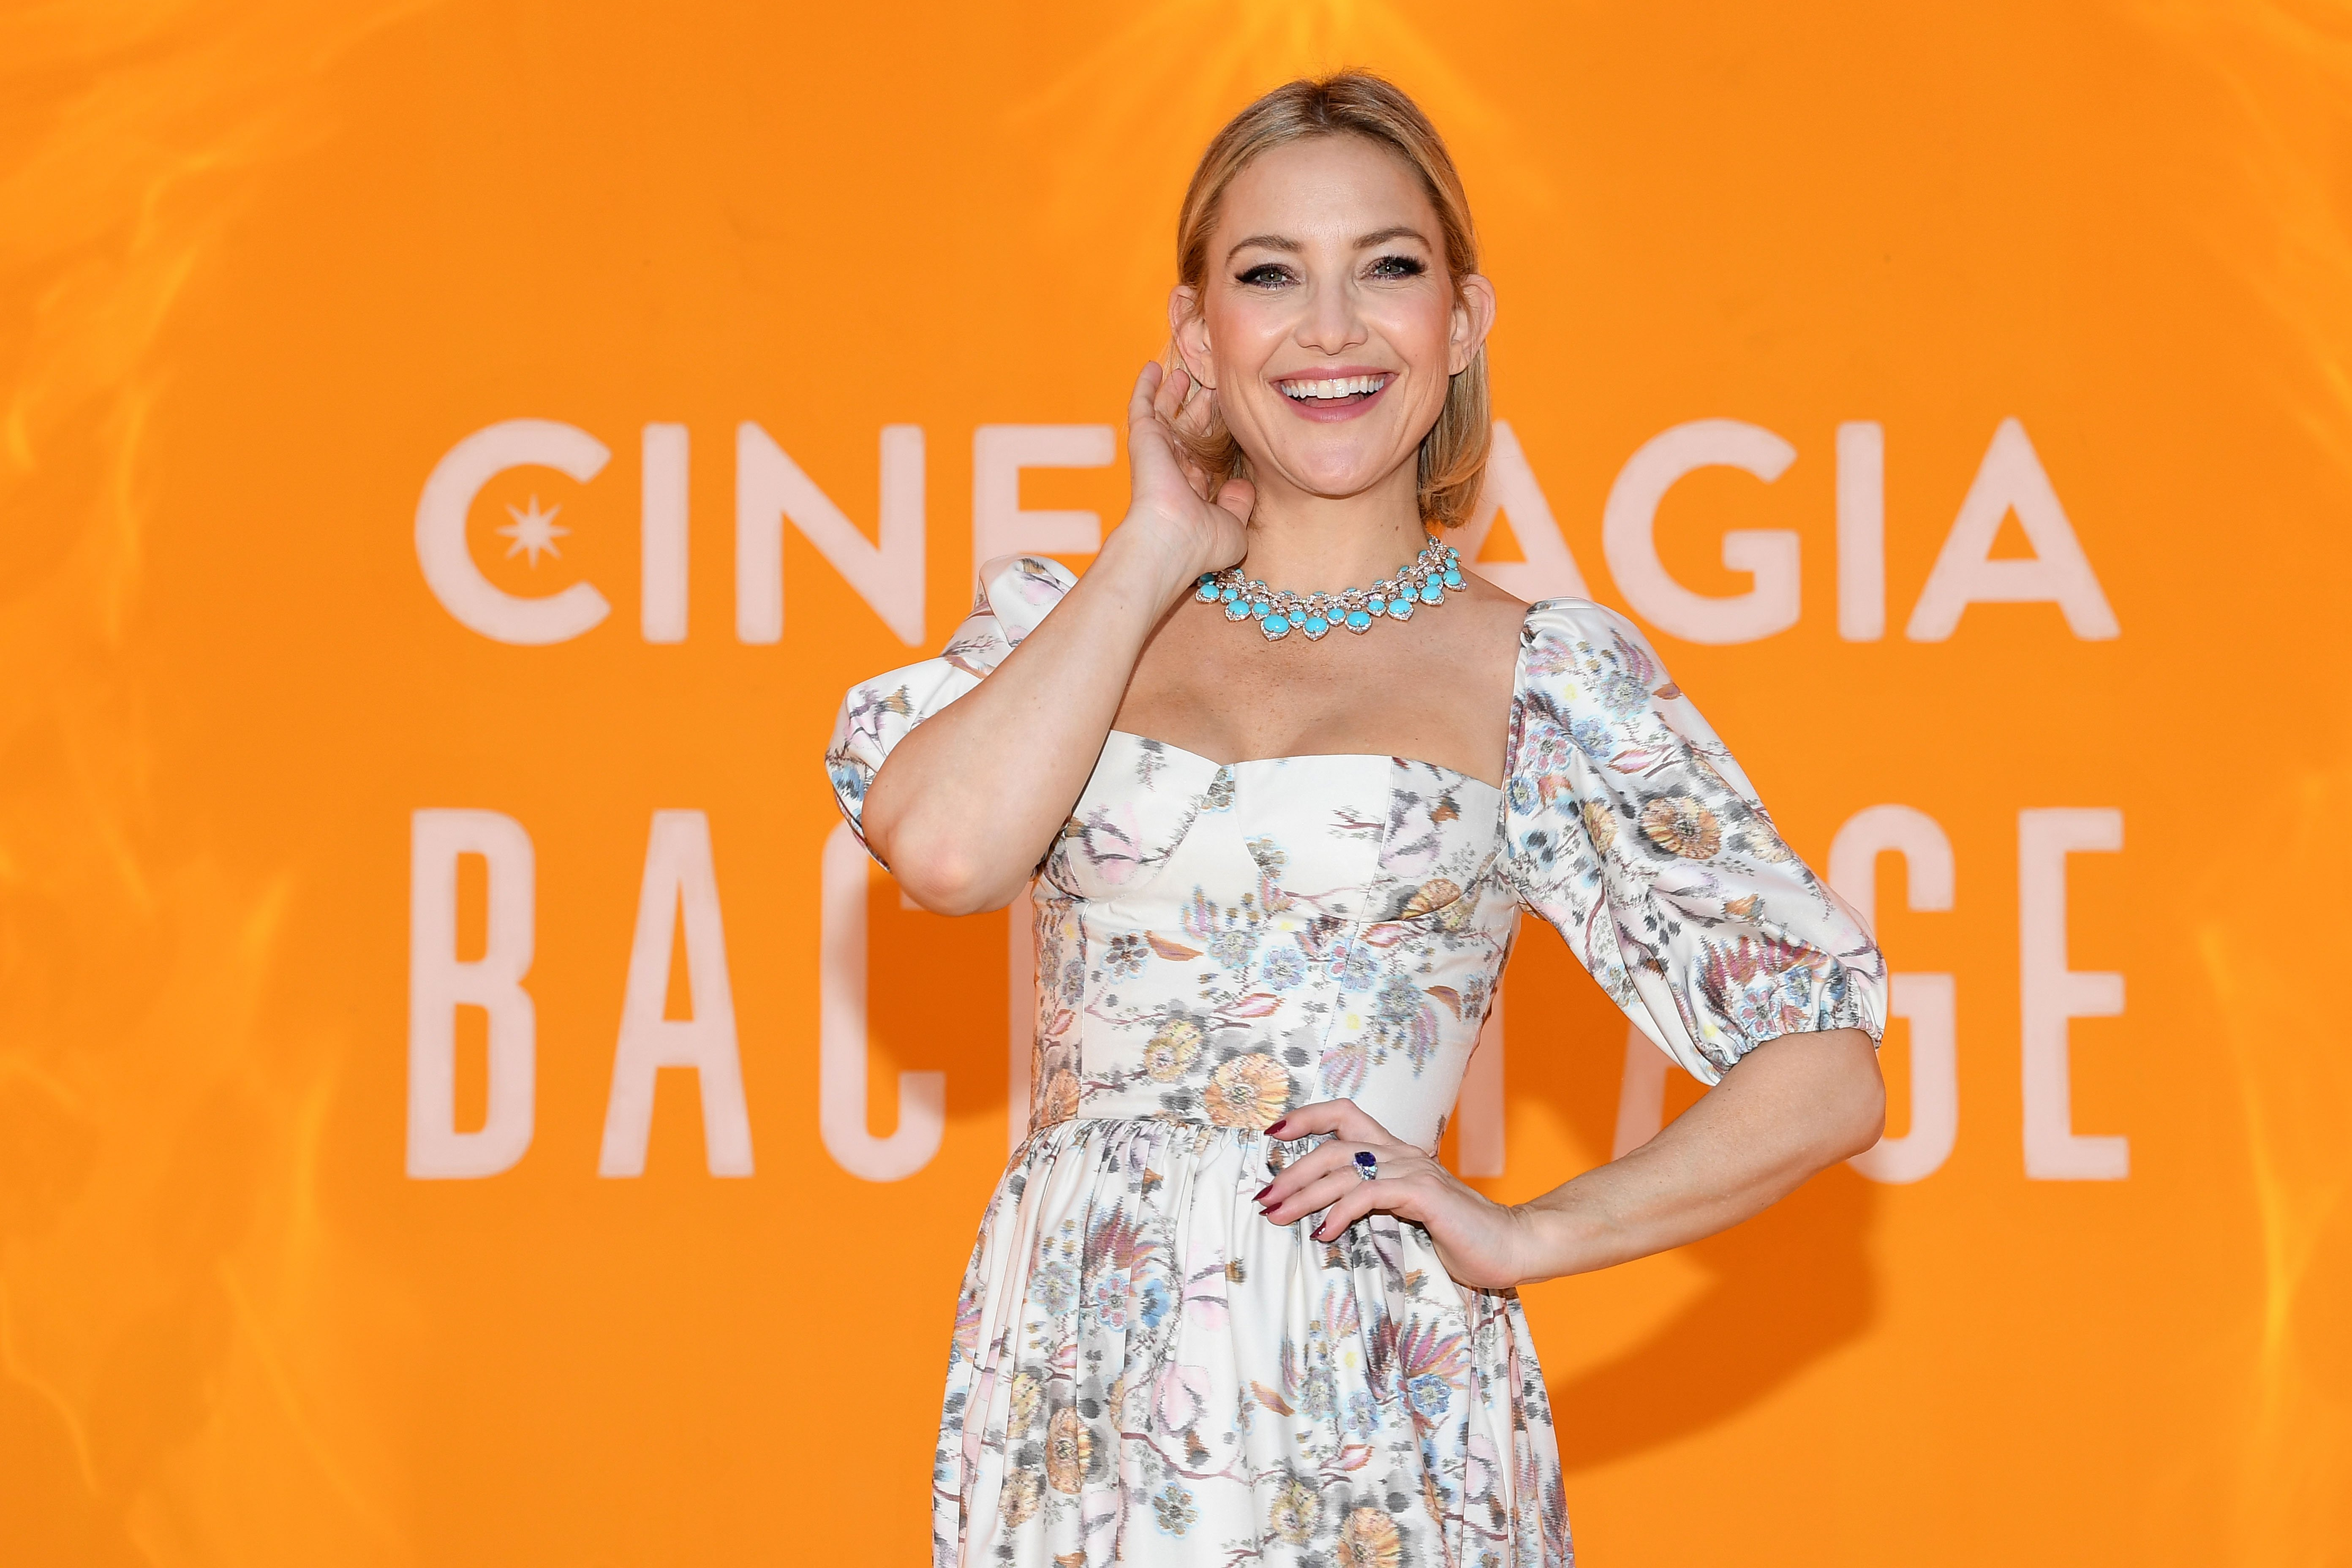 Kate Hudson attends the Bvlgari Hight Jewelry Exhibition on June 13, 2019 in Capri, Italy | Photo: Getty Images